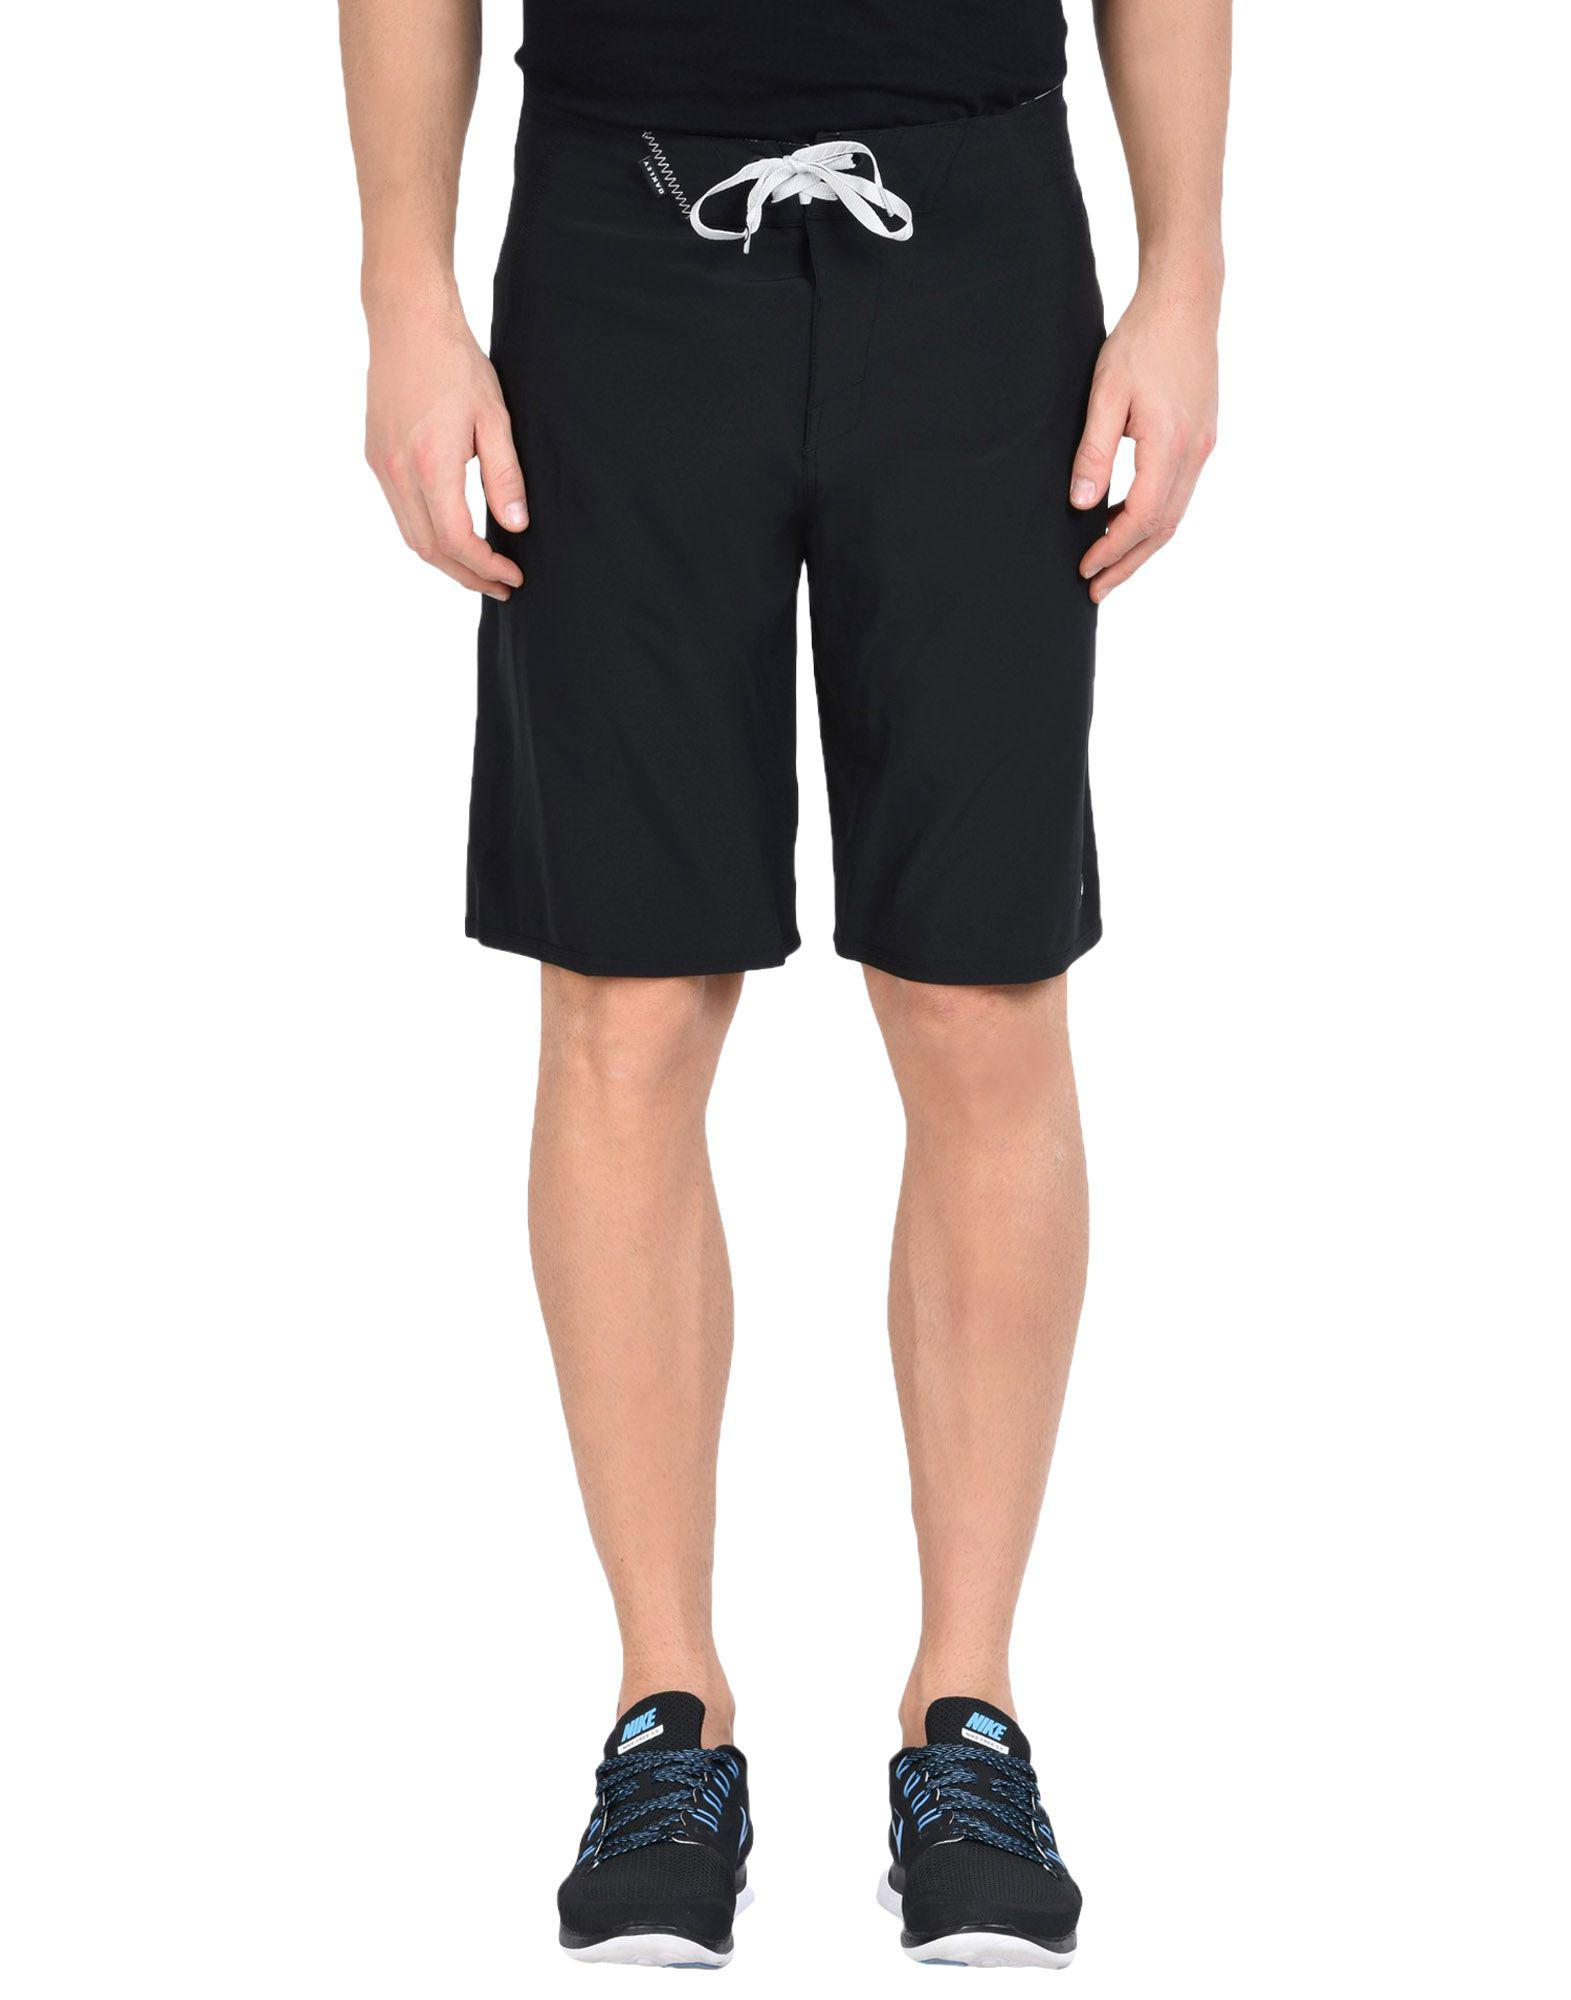 ffdda71133 Lyst - Oakley Beach Shorts And Trousers in Black for Men